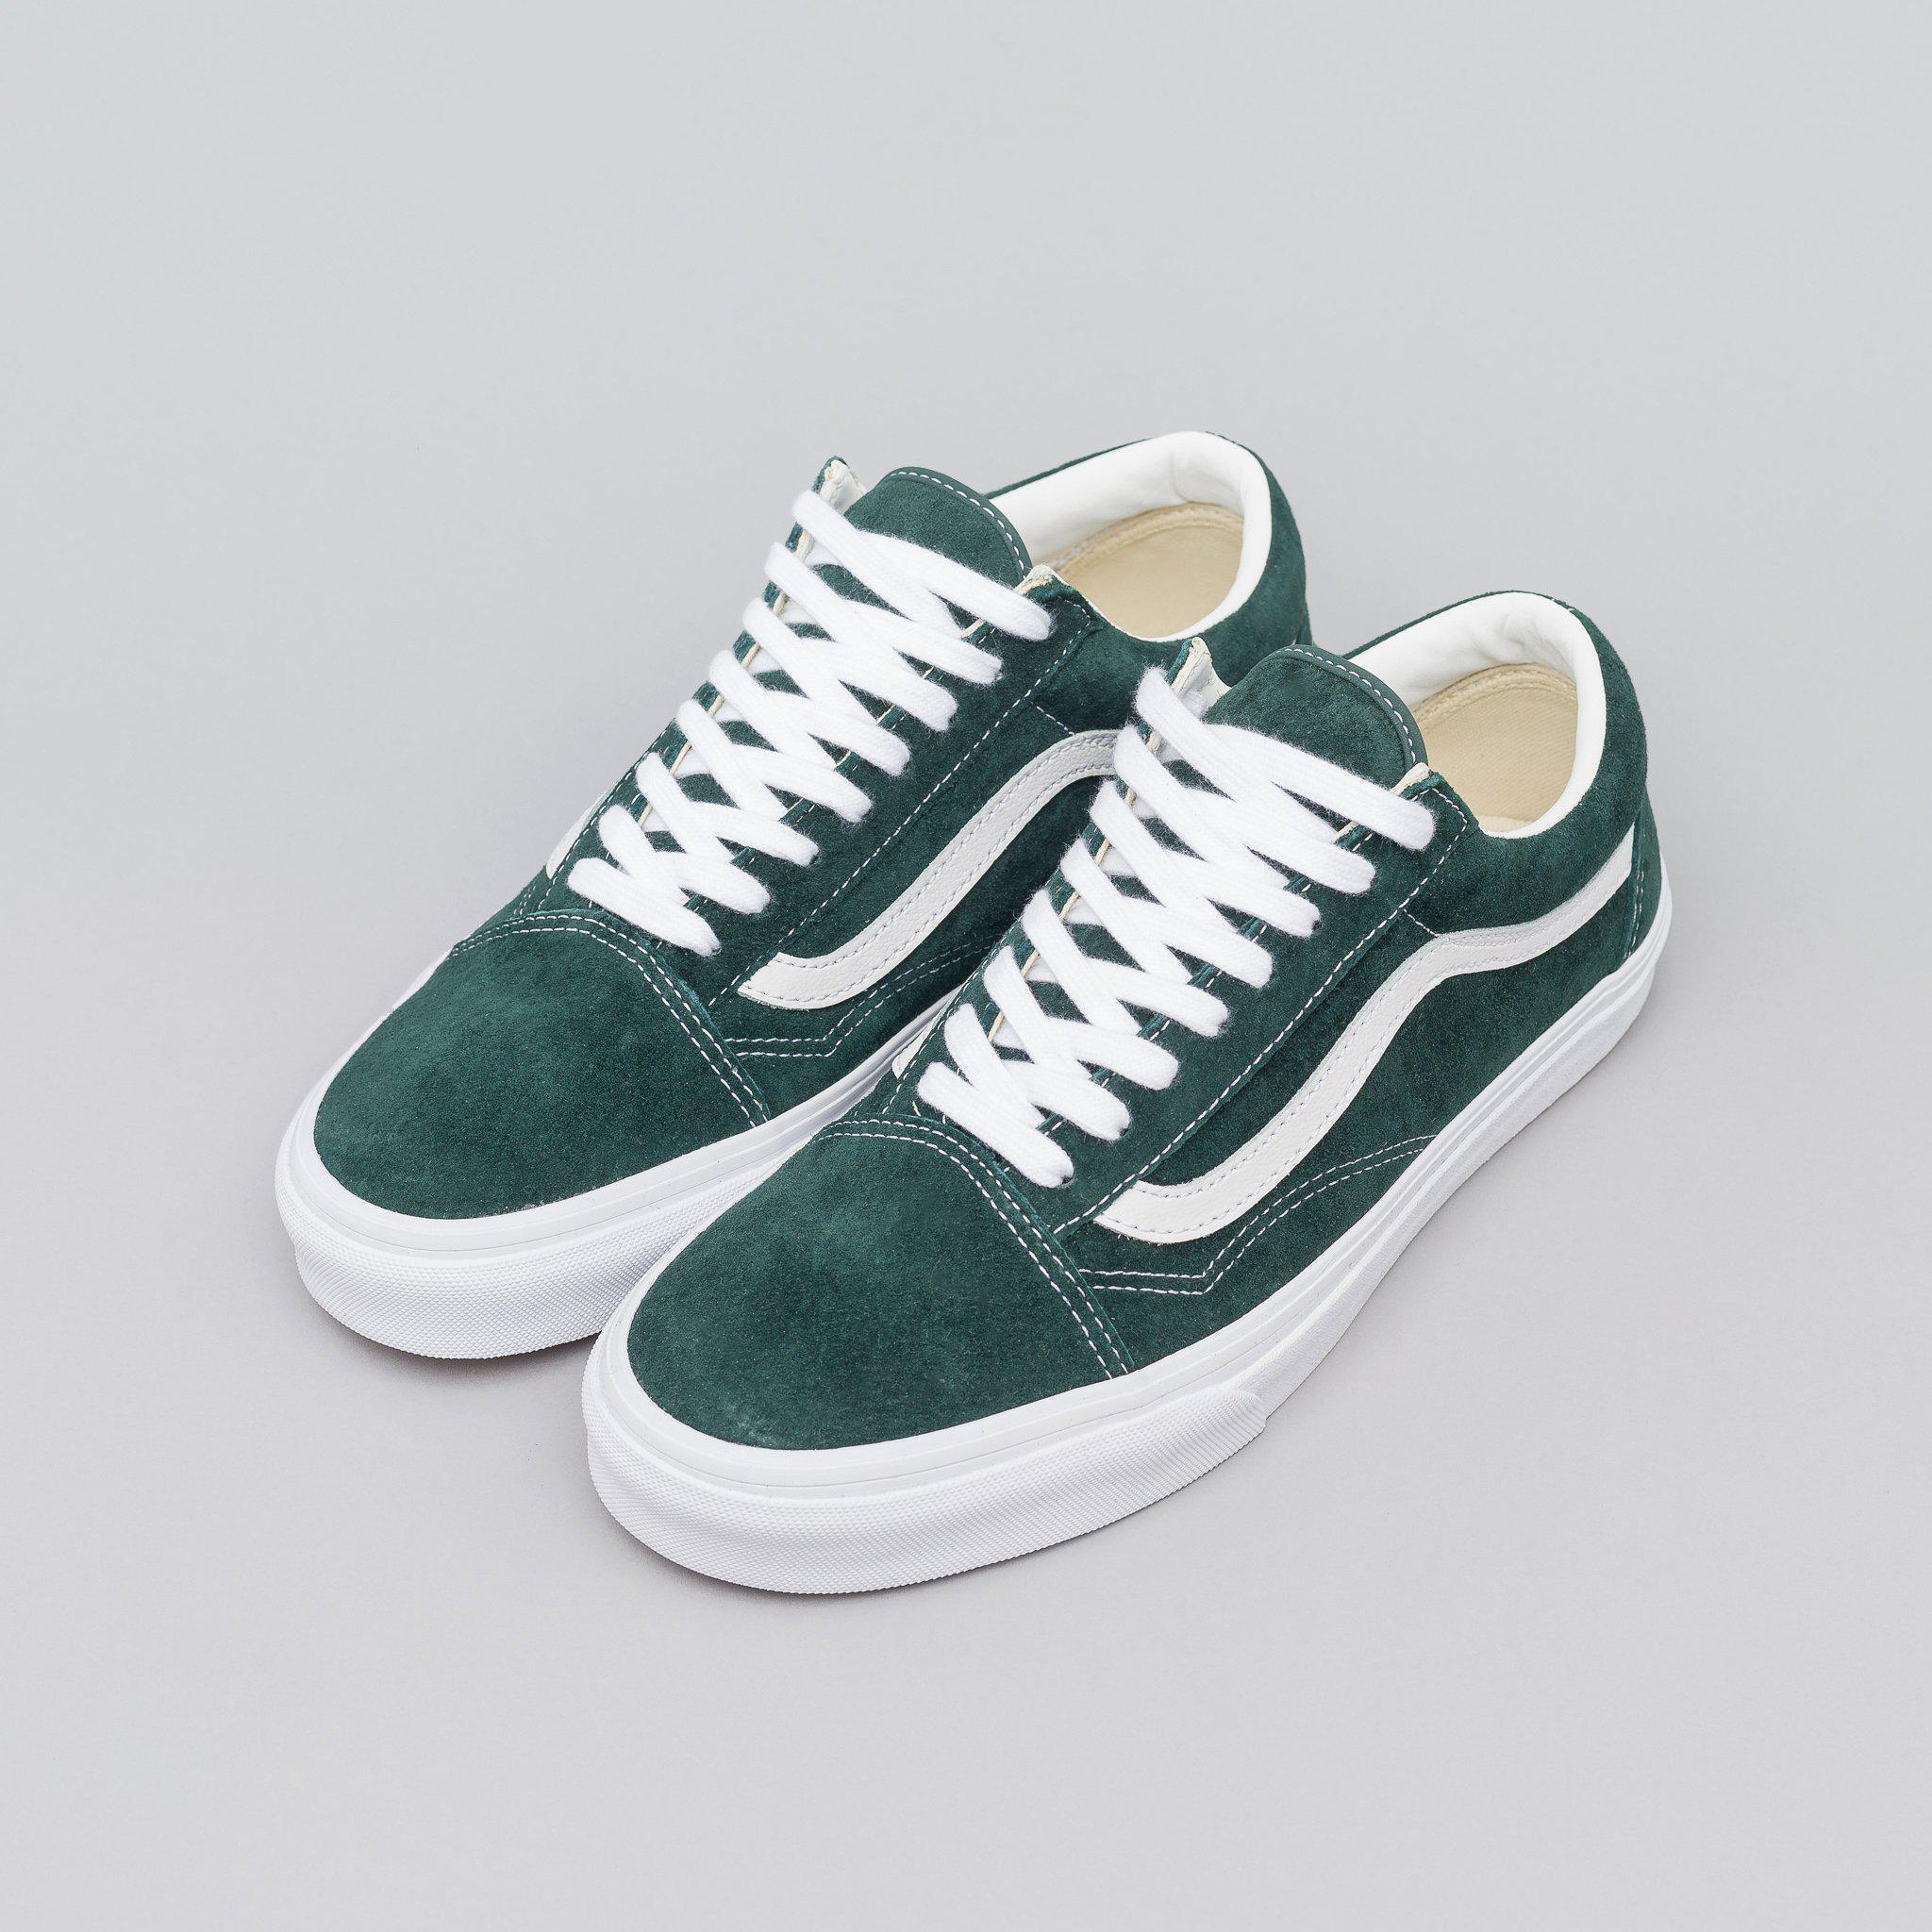 Lyst - Vans Old Skool Pig Suede In Darkest Spruce for Men 07b578e5a